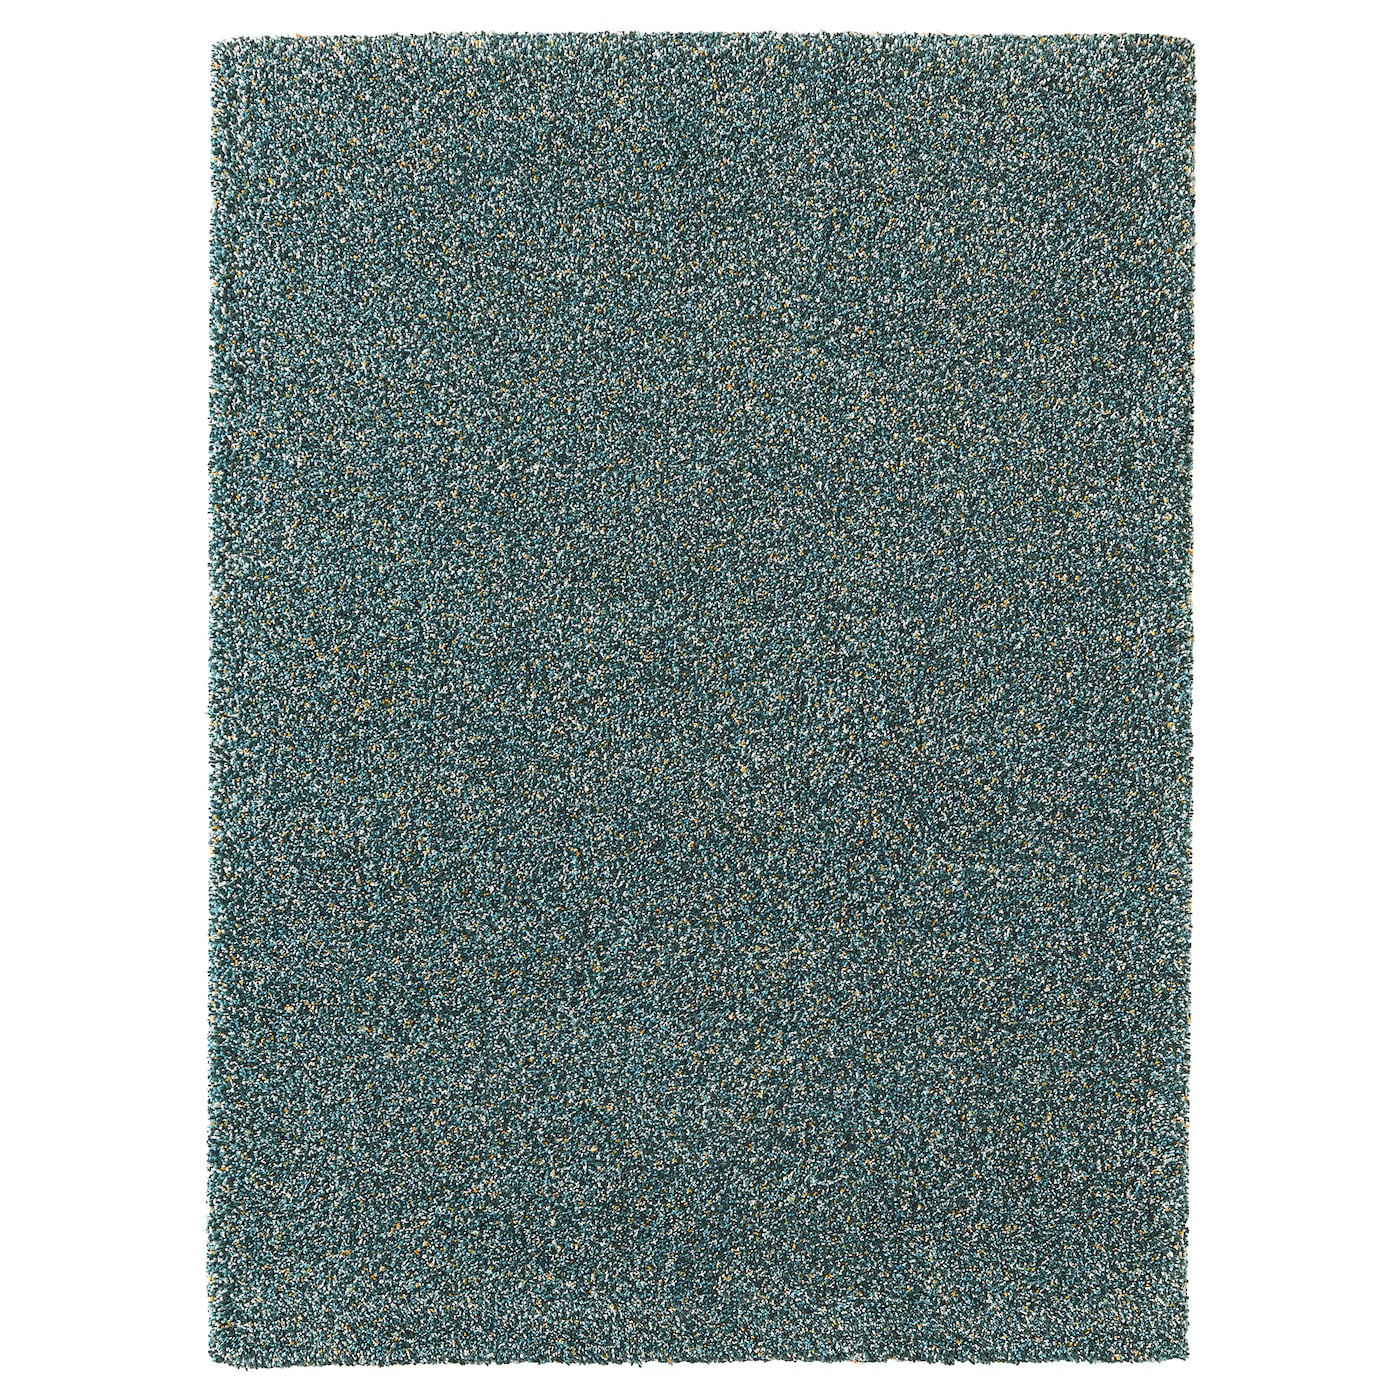 VINDUM Rug, High Pile Blue-green 200 X 270 Cm